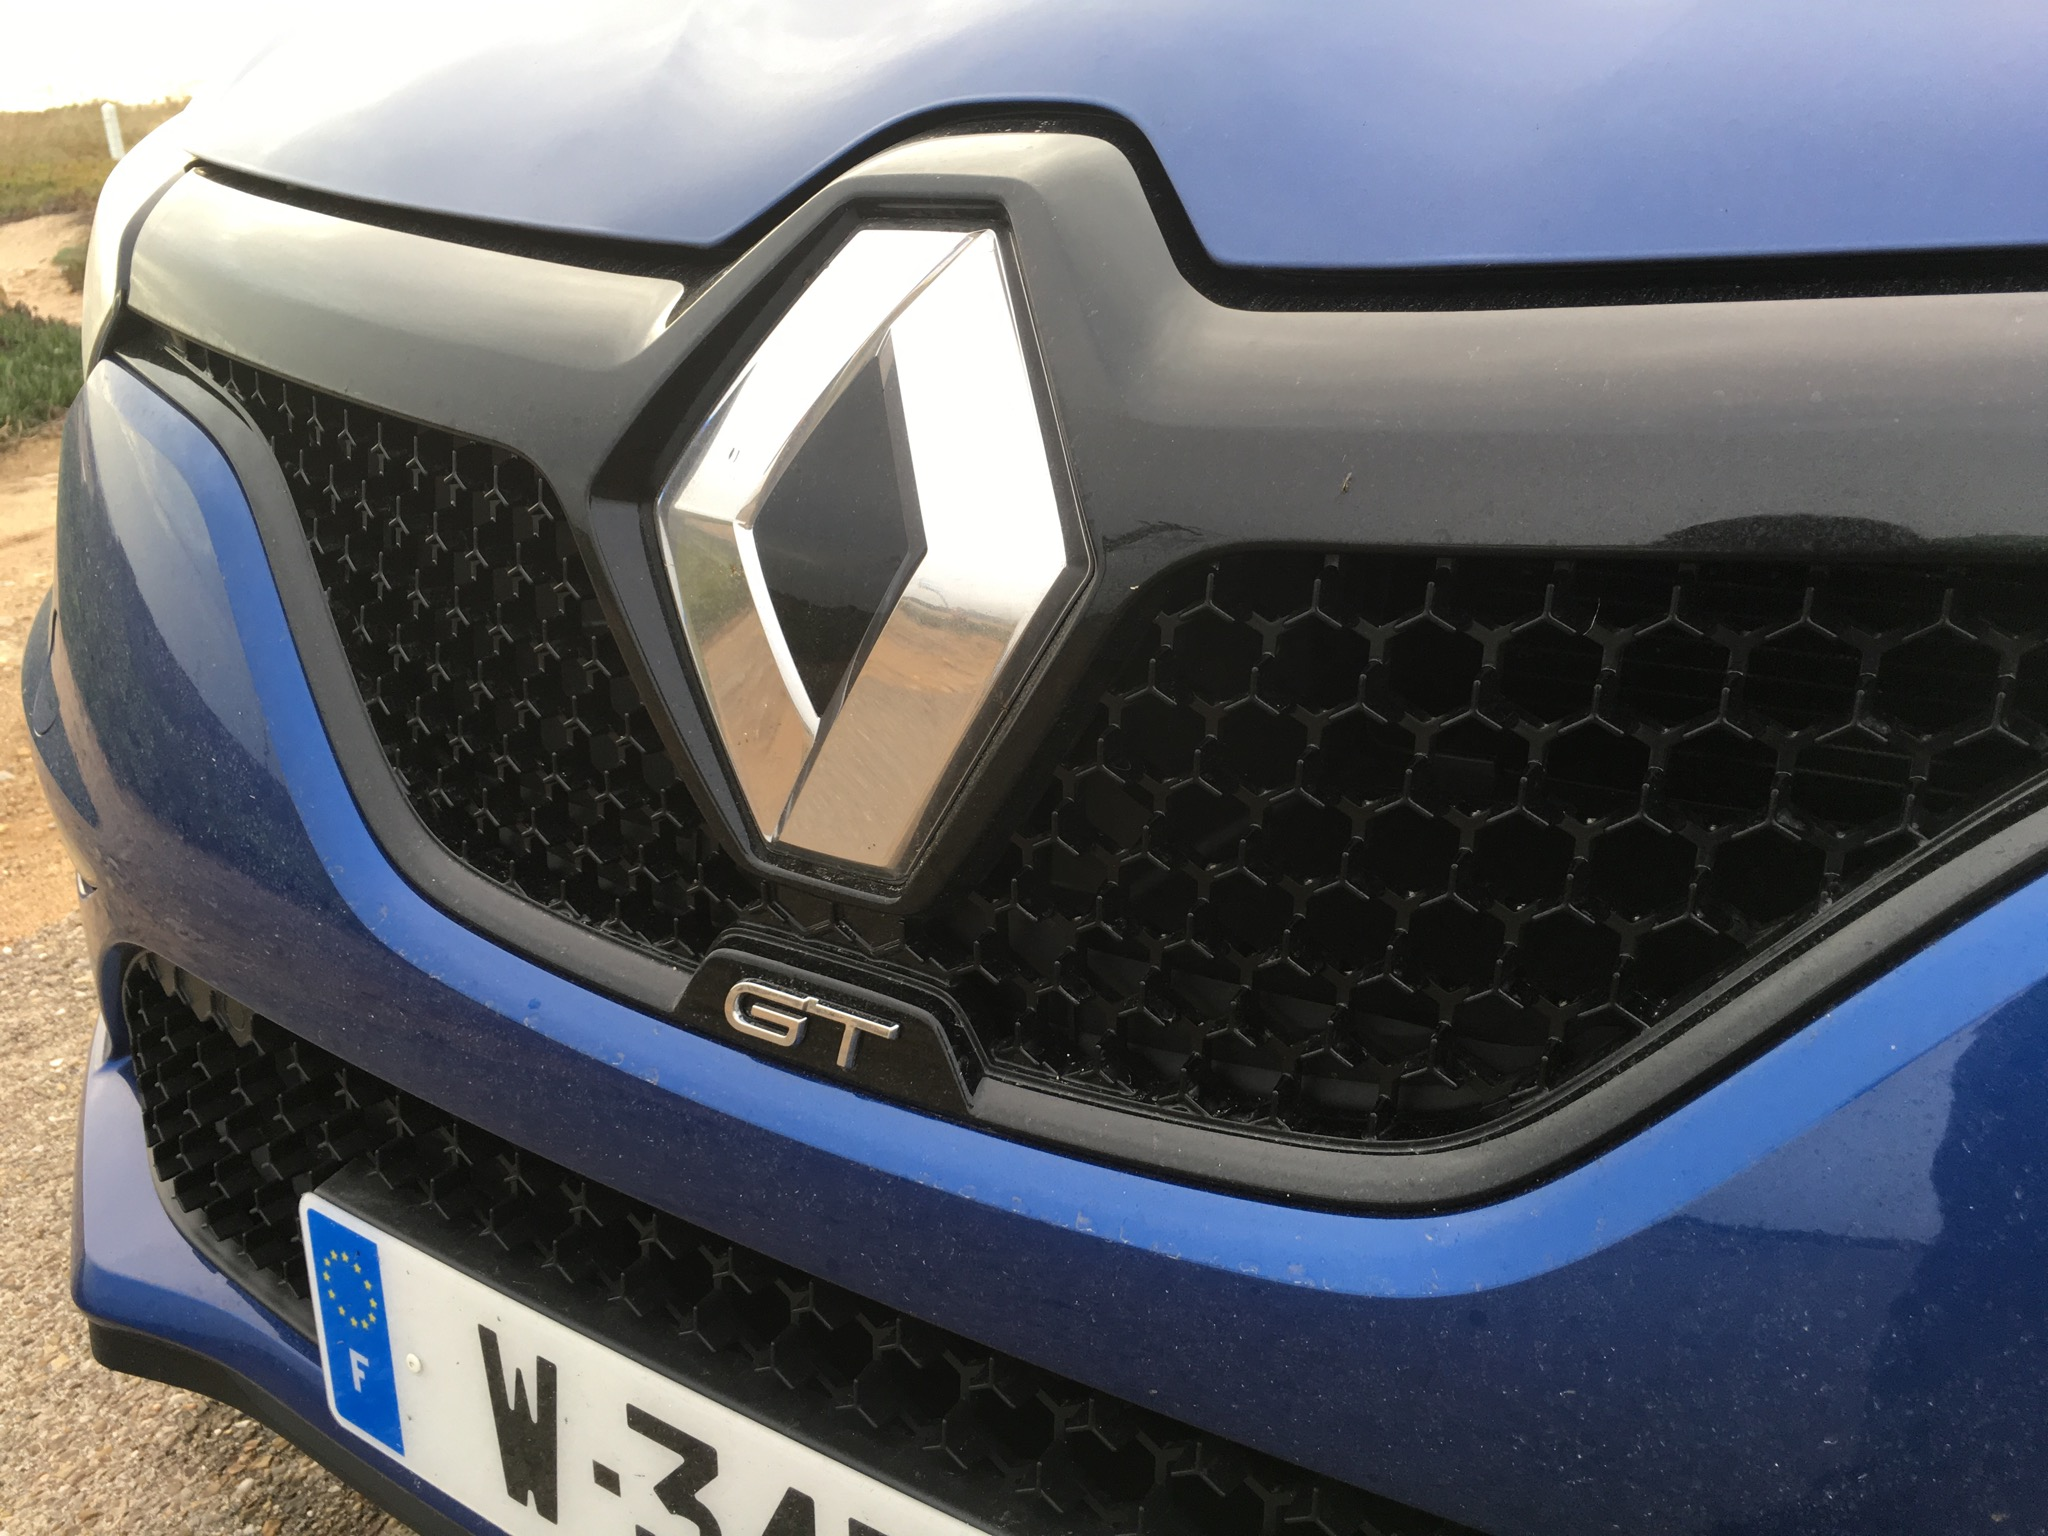 2016 Renault Megane Gt Grille (View 22 of 27)